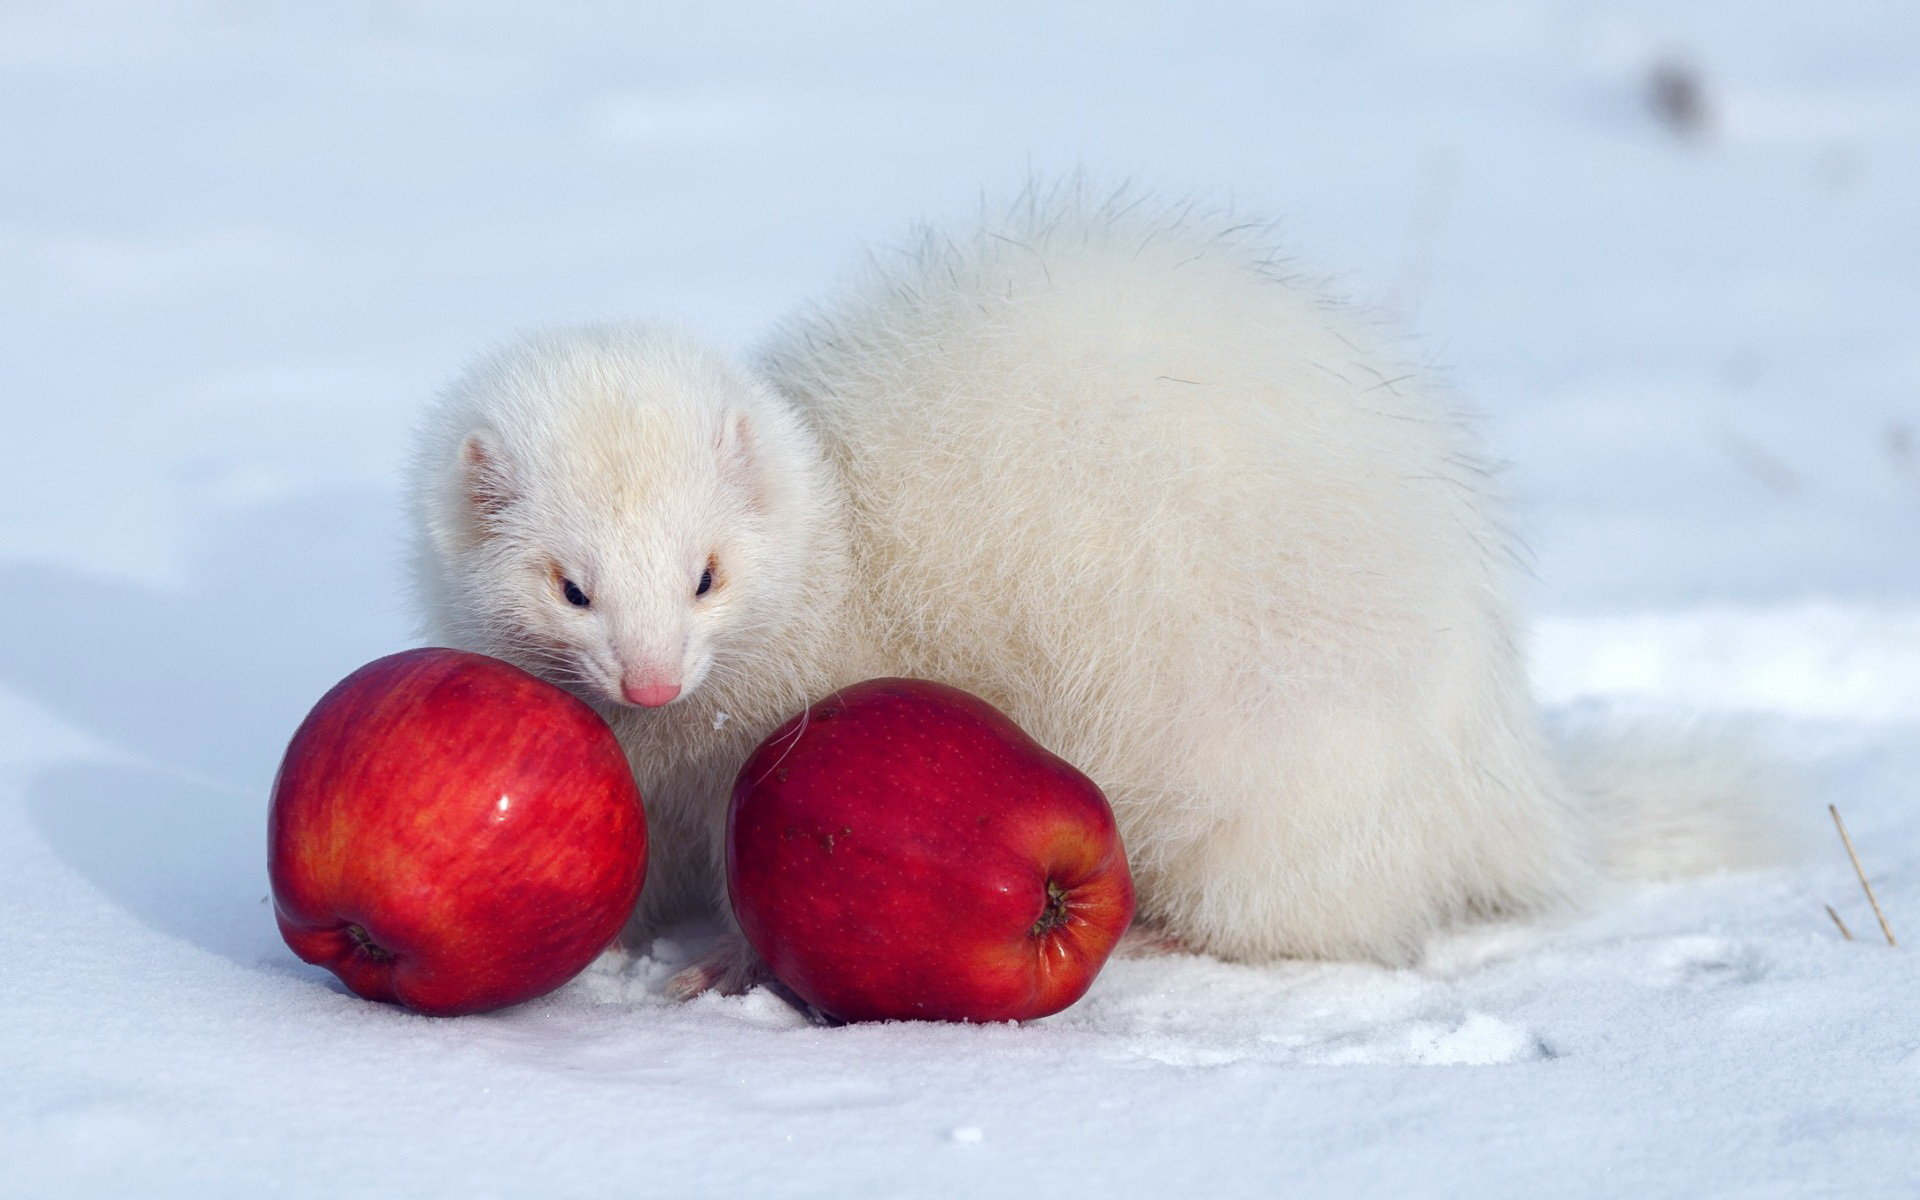 Download hd 1920x1200 Ferret PC wallpaper ID:165811 for free